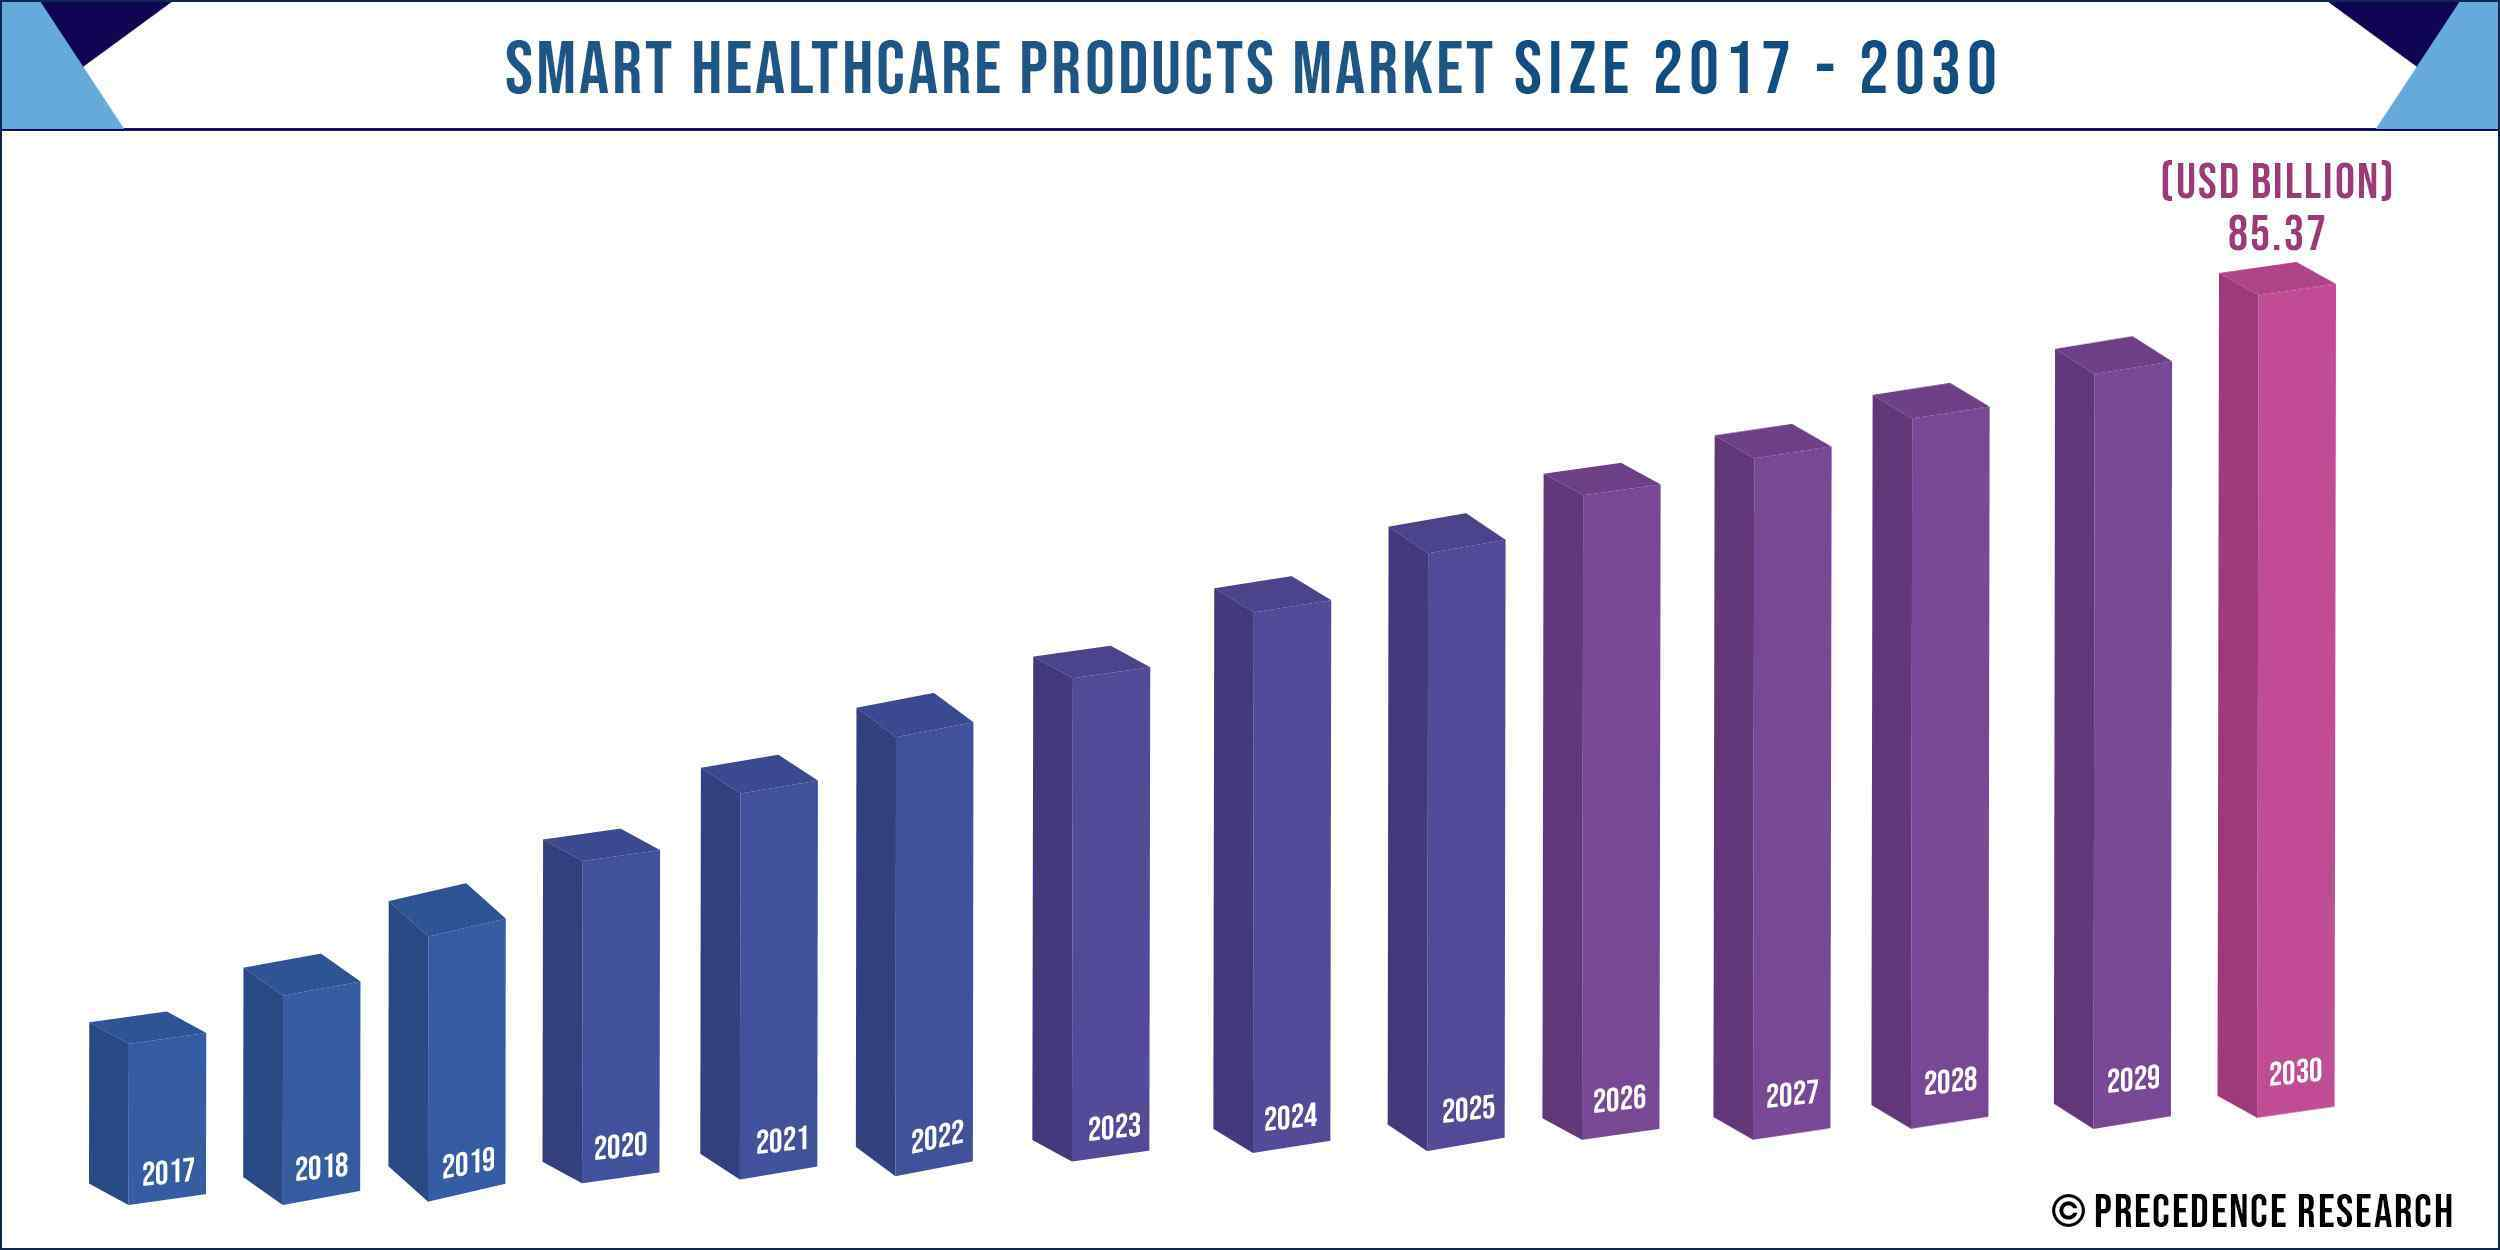 Smart Healthcare Products Market Size 2017 to 2030